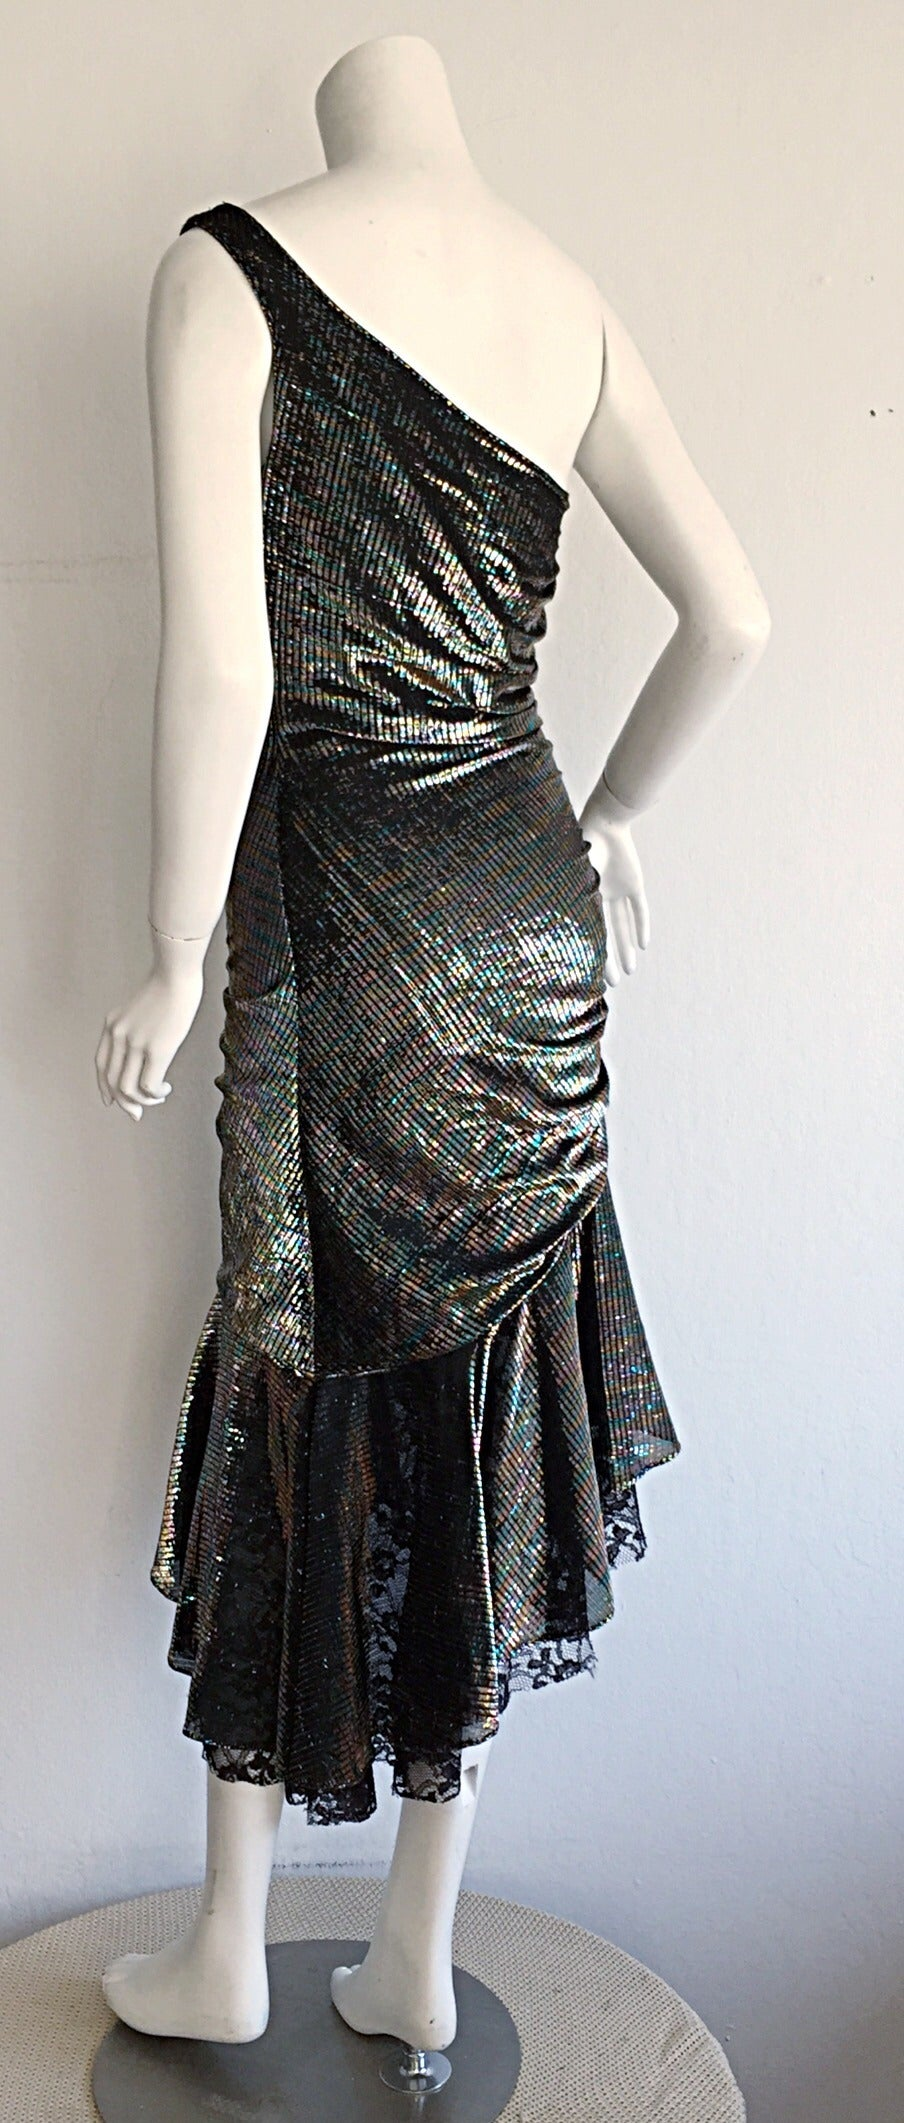 Stunning 1970s Samir One - Shoulder Metallic Rainbow Iridescent Cocktail Dress 7